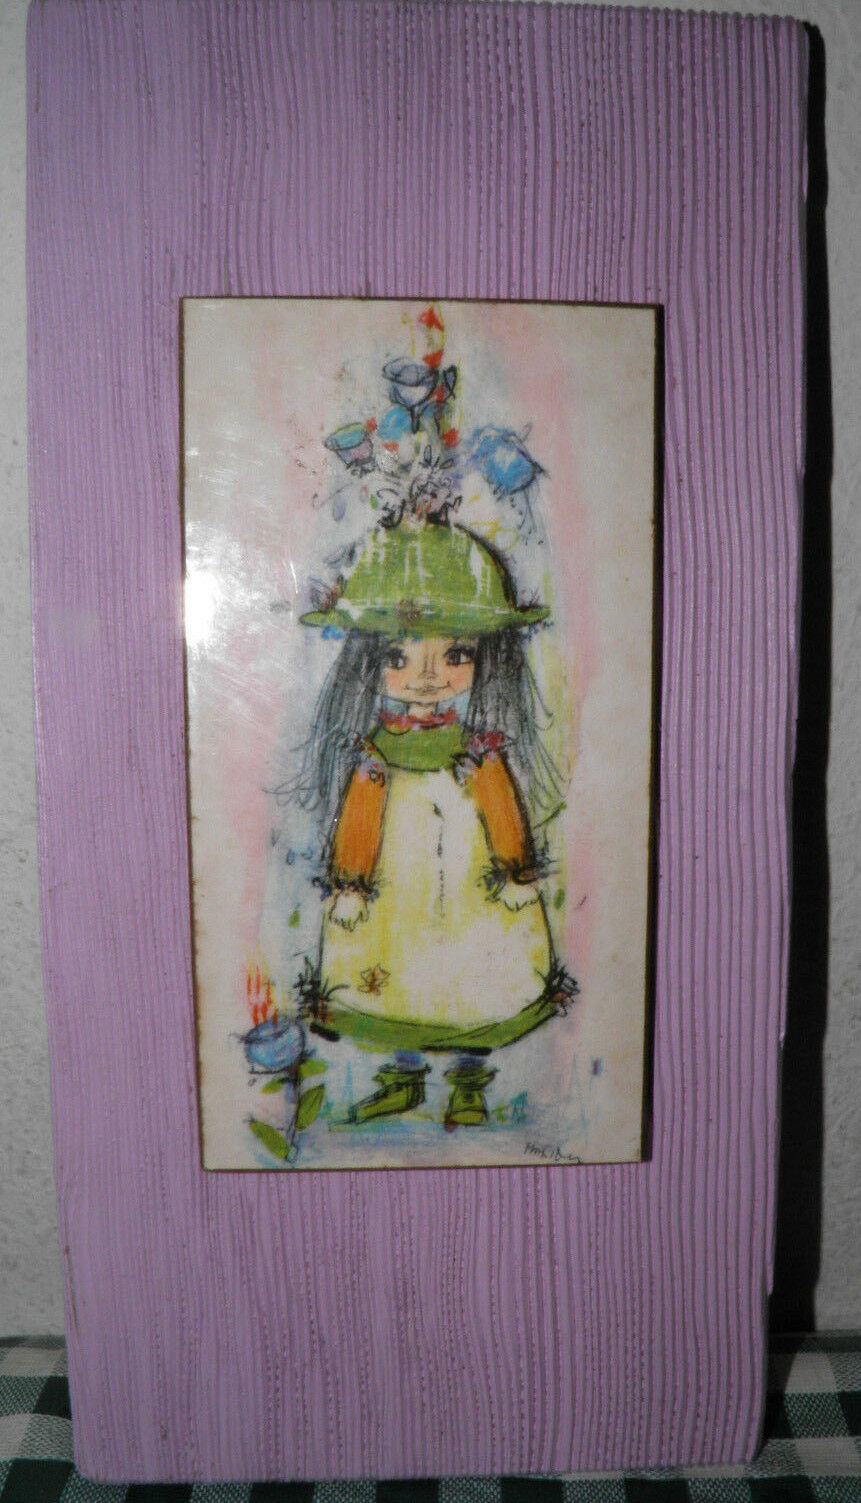 1970s Boy Girl Decoupage Art Plaques Wall Decor Signed Marion 19 OFF 1 DAY  - $39.84